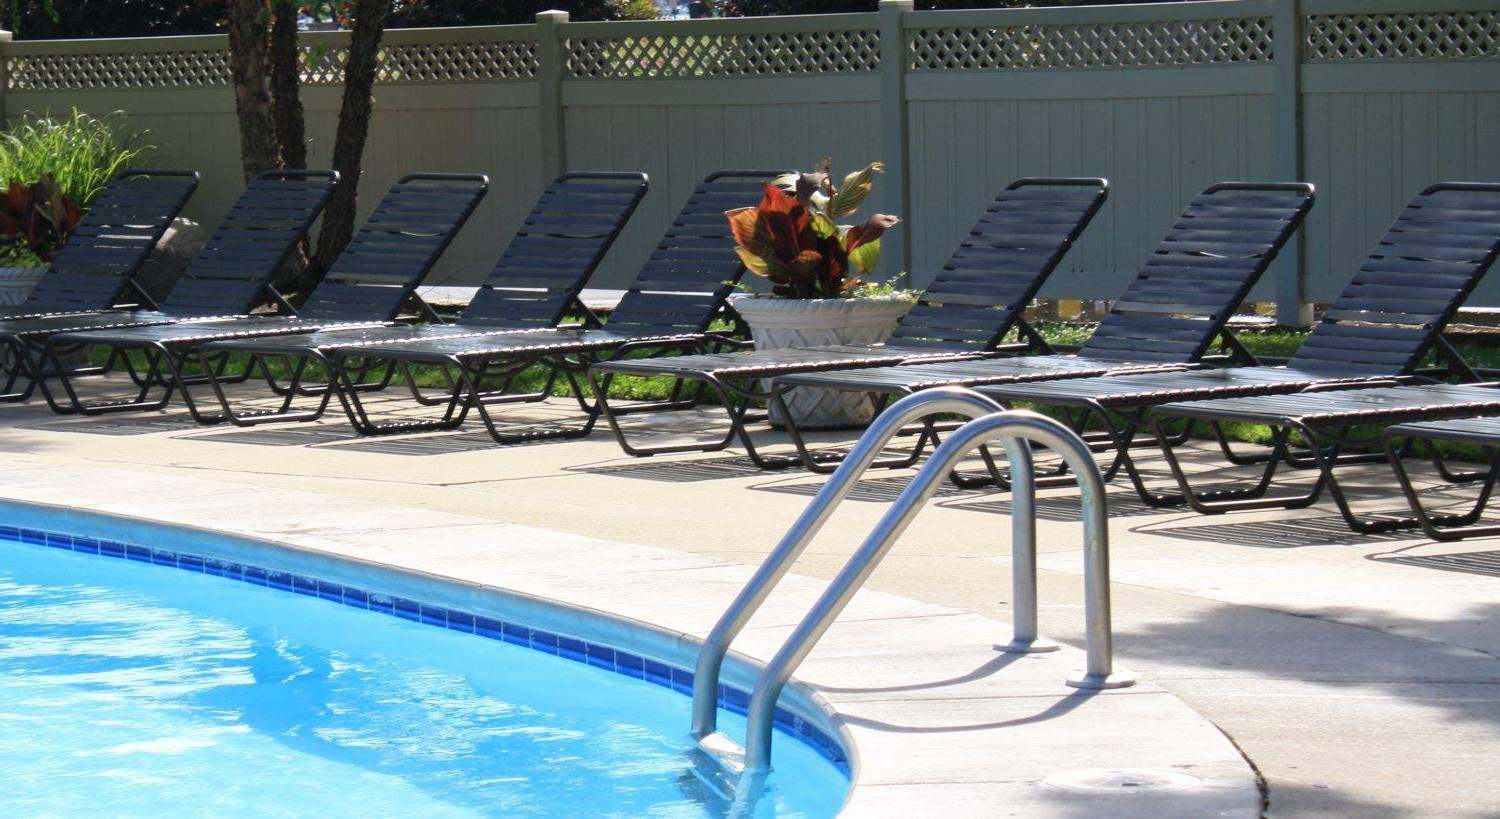 Patiosusa In Fashionable Vinyl Strap Chaise Lounge Chairs (View 12 of 15)